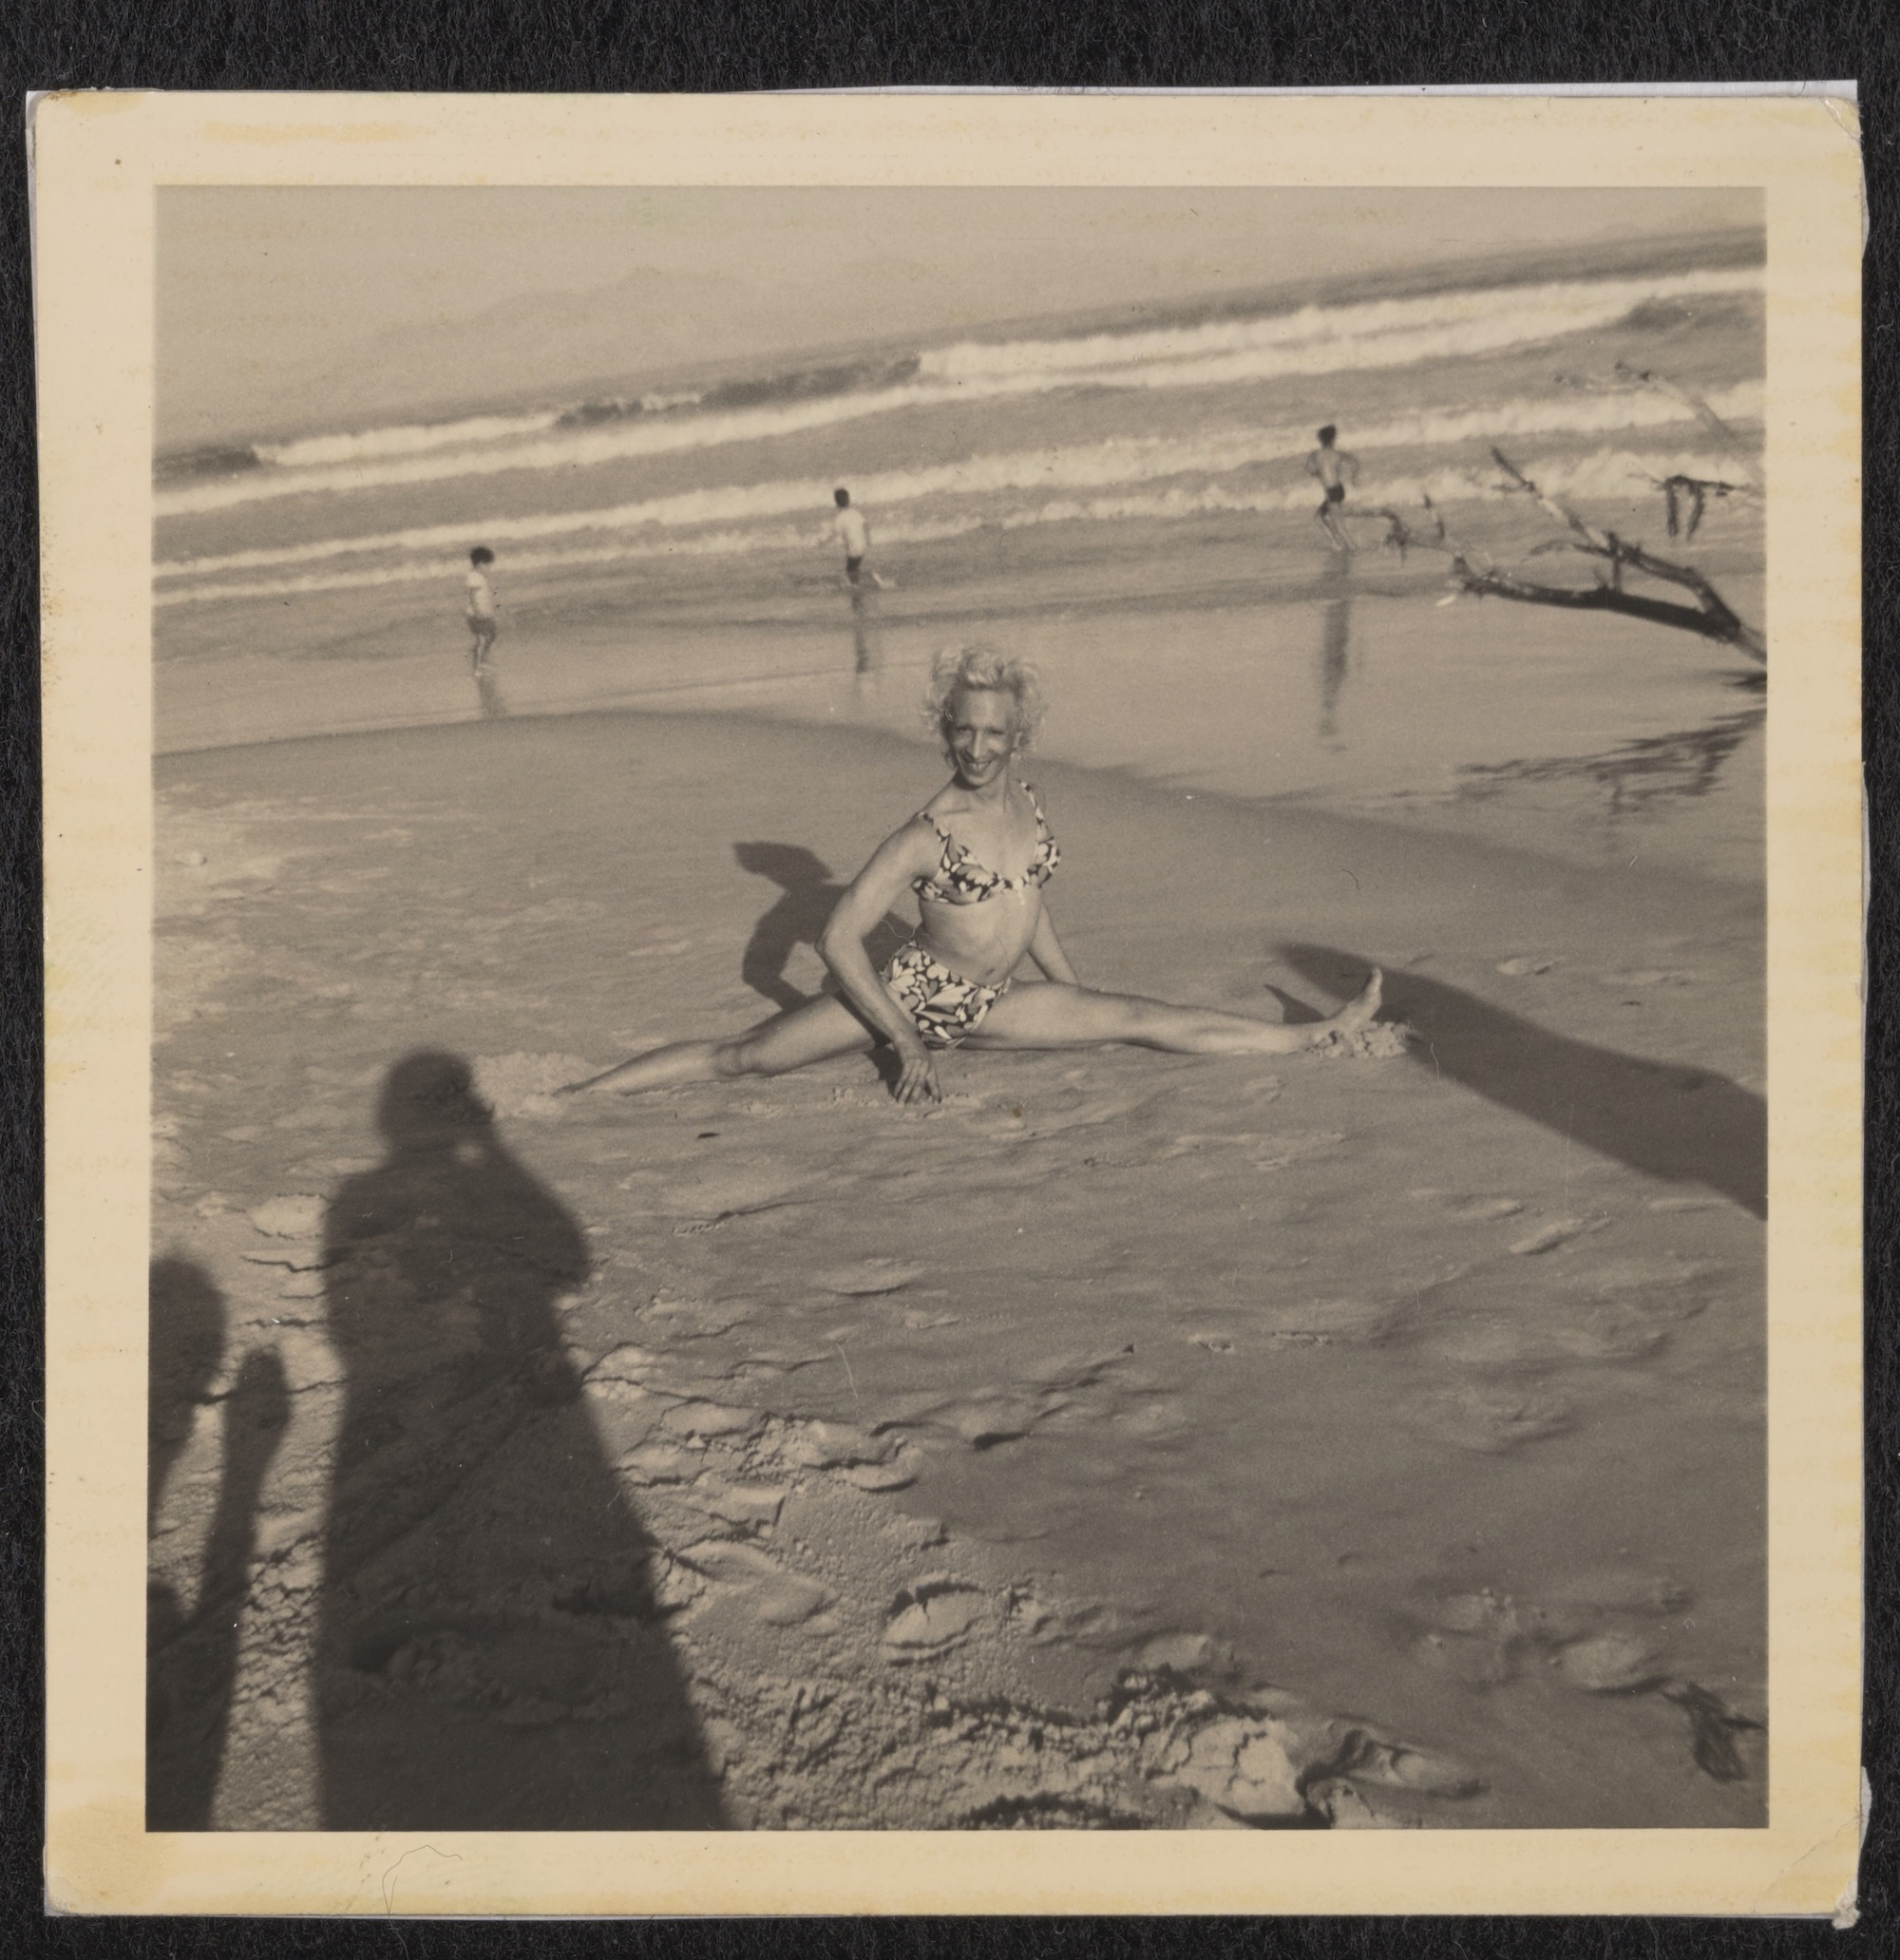 Kewpie Doing a Split at Strandfontein Beach, circa 1975 to 1979